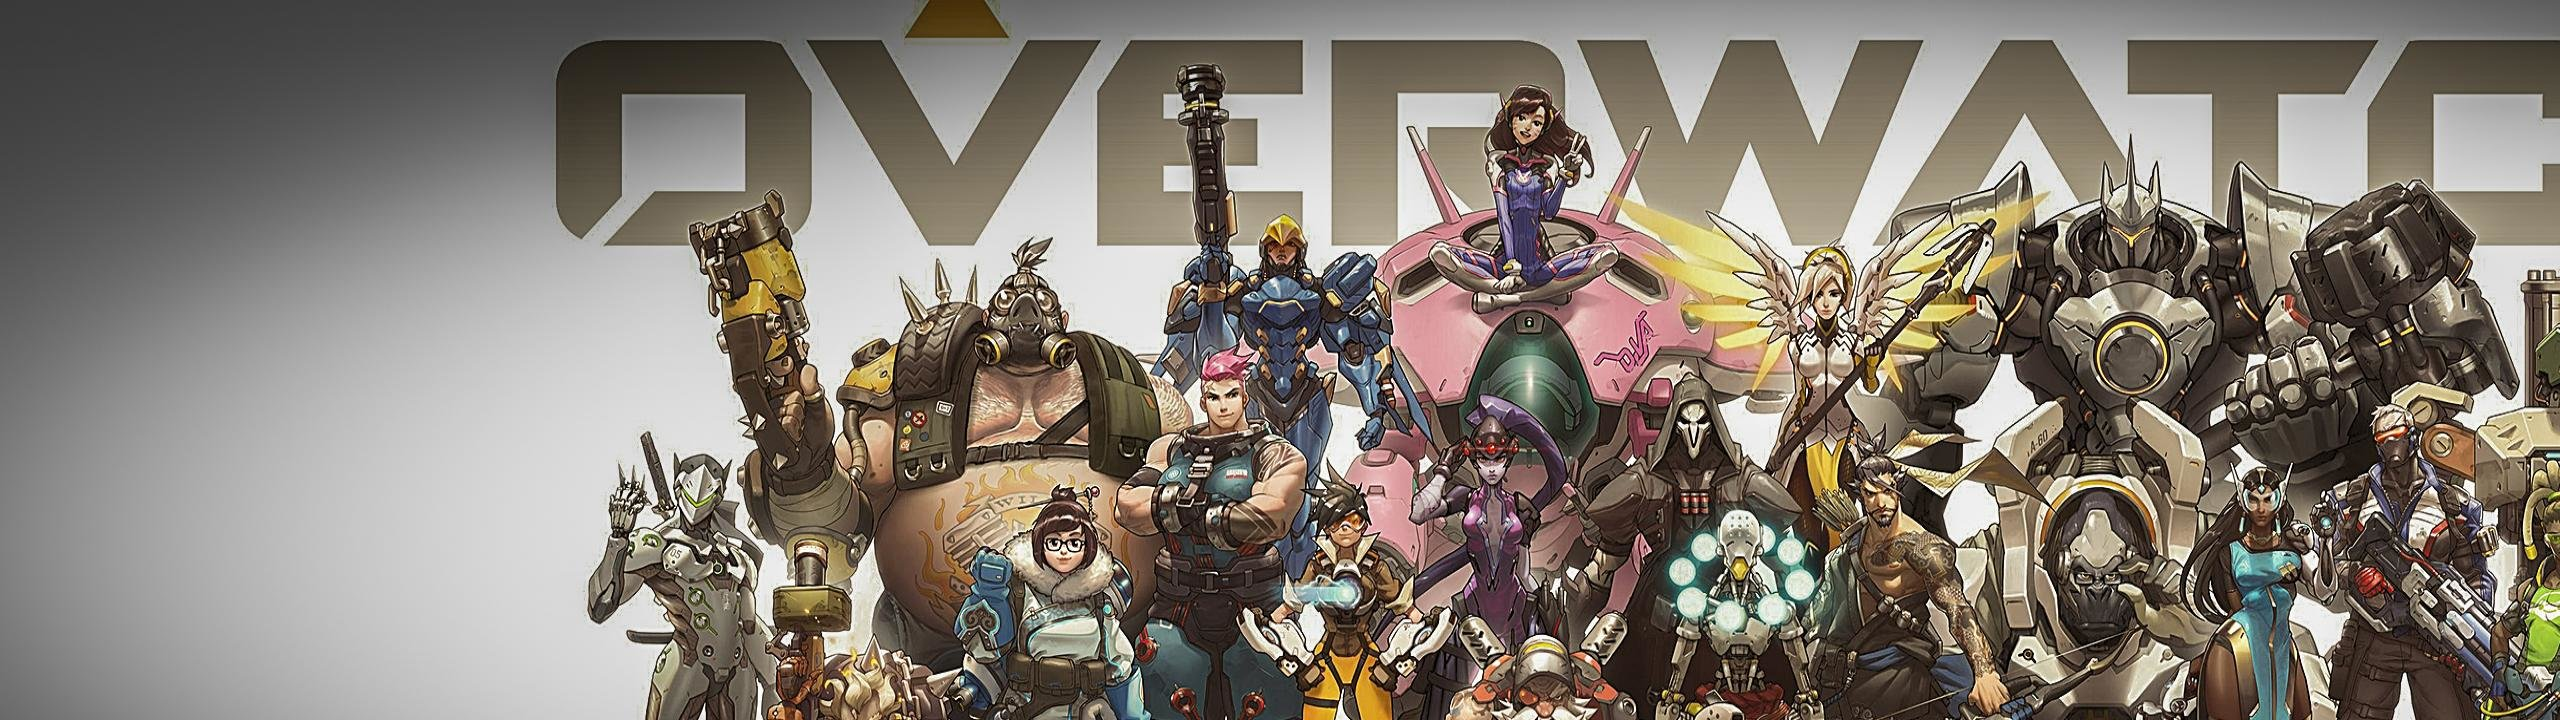 Download dual monitor 2560x720 Overwatch PC background ID:169632 for free